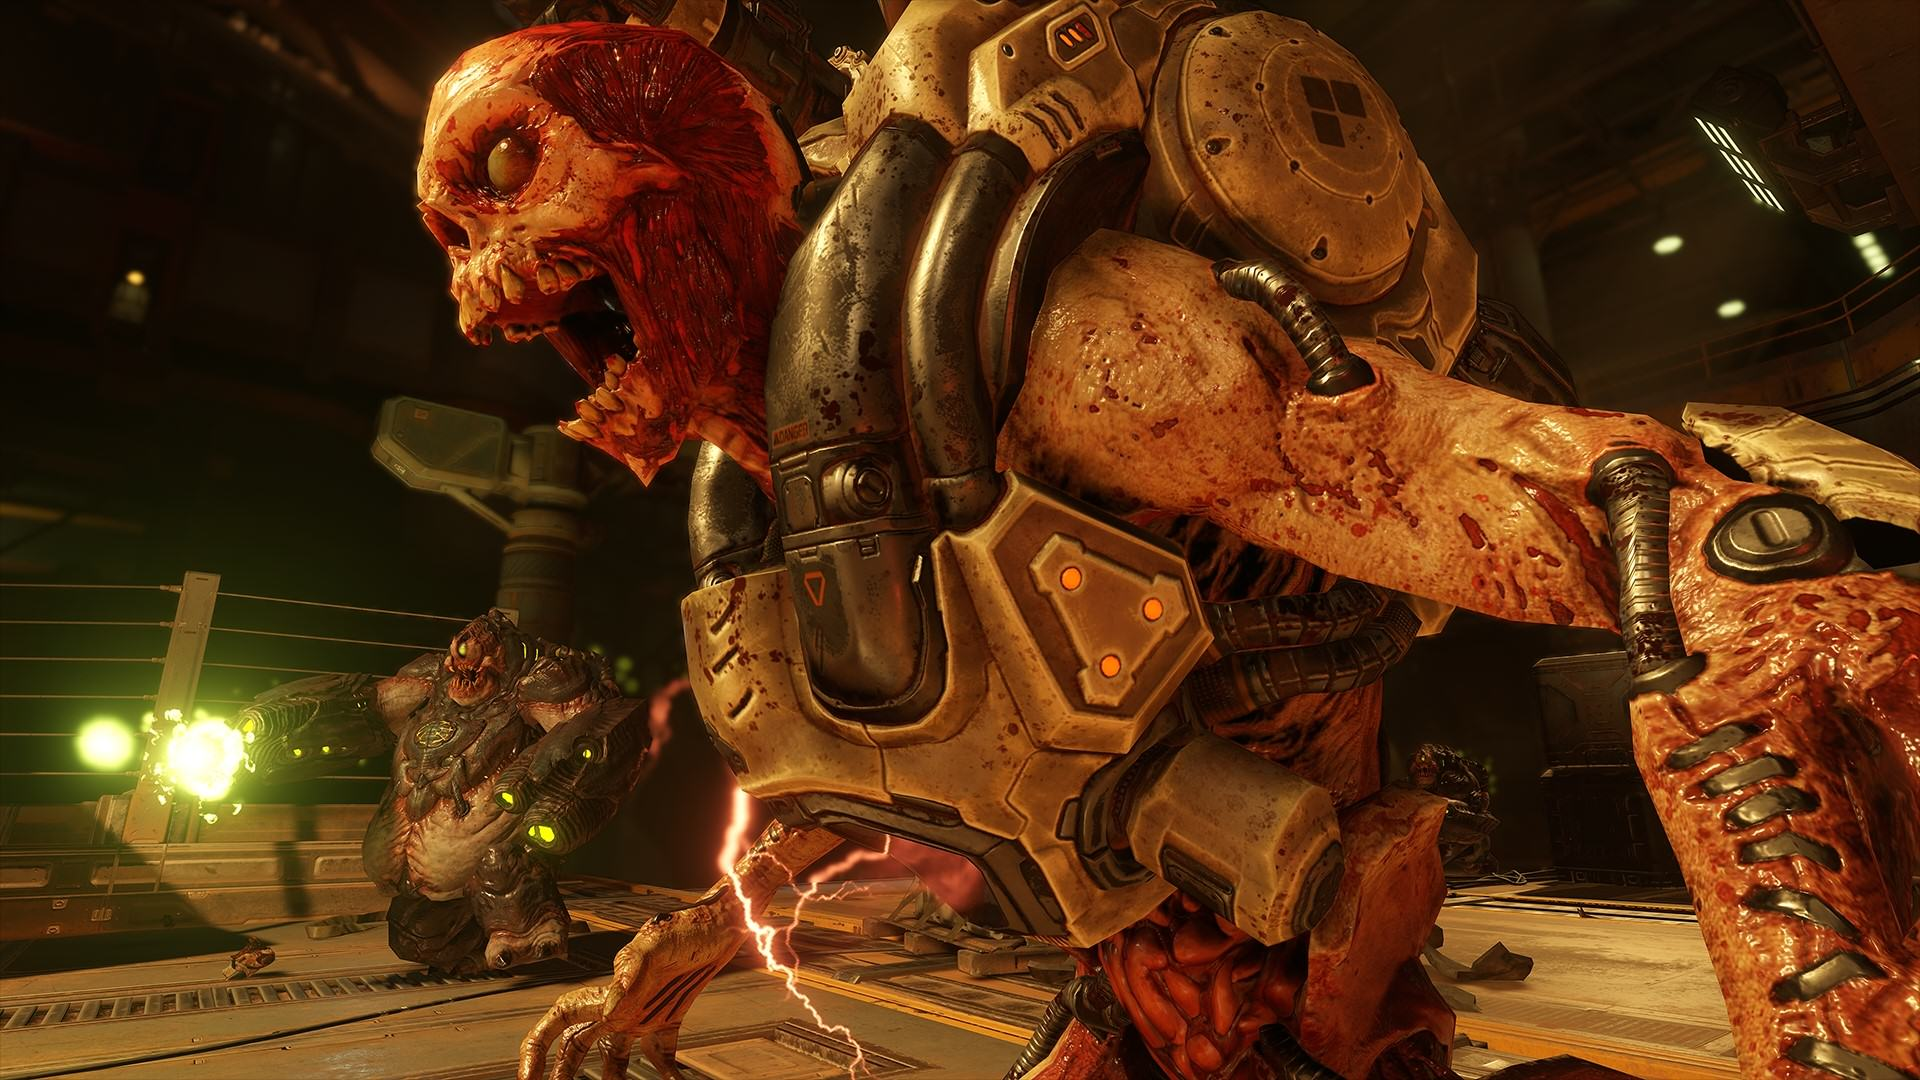 DOOM 2016 Rev Mancubus 1437988261 DOOM Higher Difficulty And Non Linear Exploration Confirmed